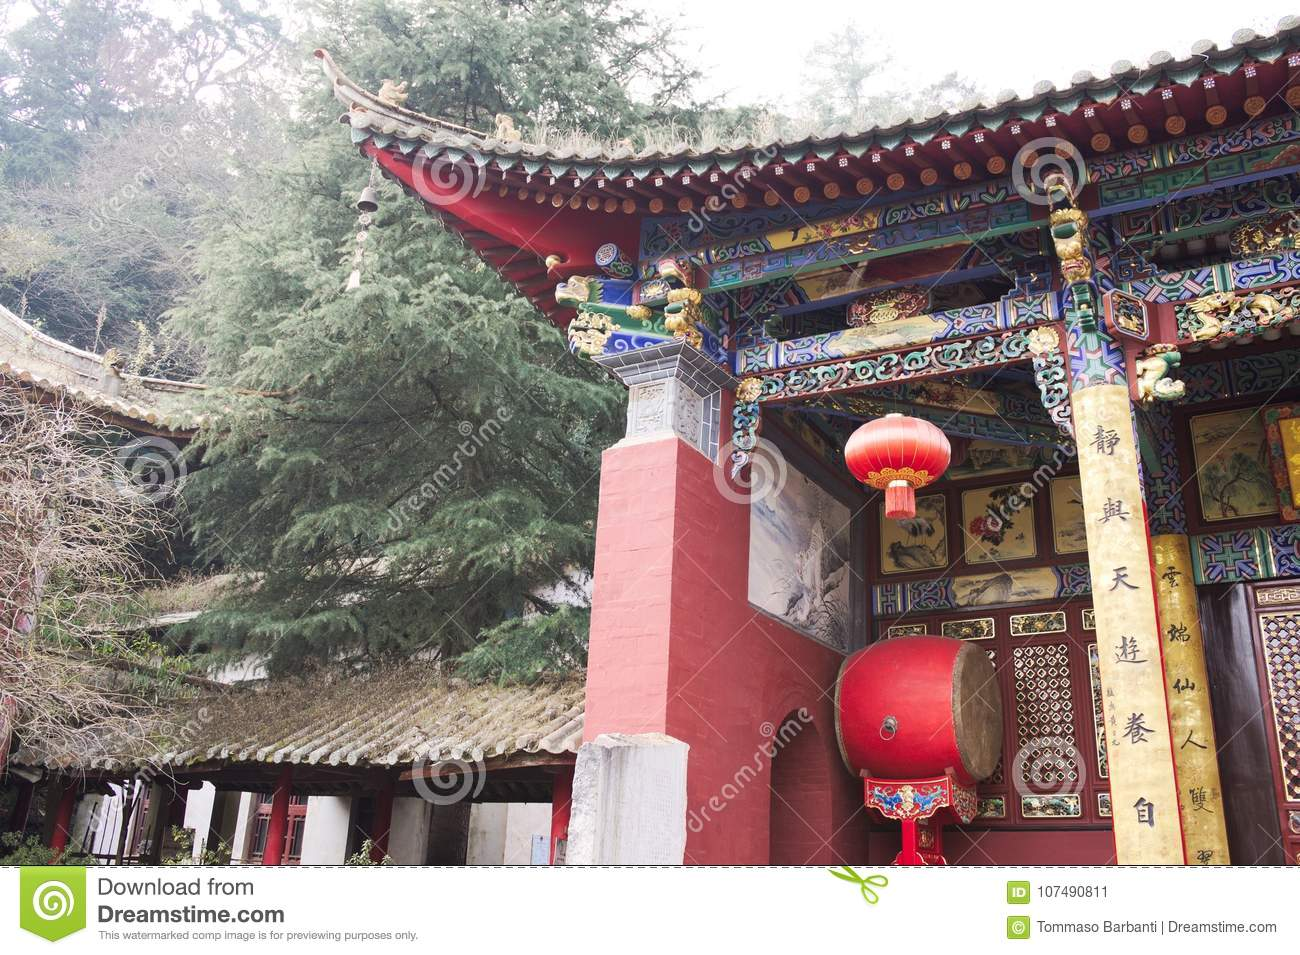 Details about Historic China